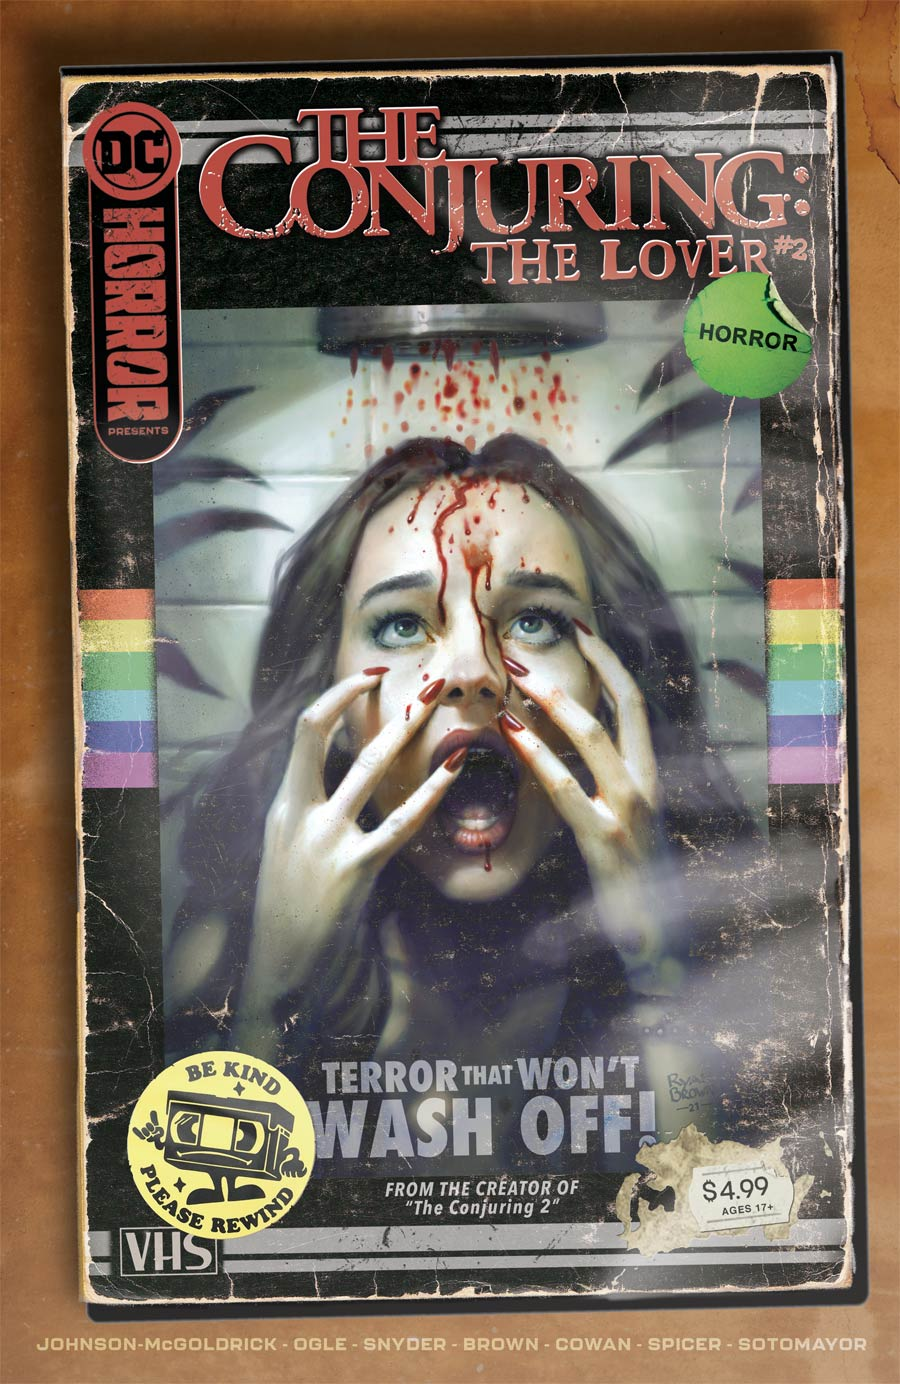 DC Horror Presents The Conjuring The Lover #2 Cover B Variant Ryan Brown VHS Tribute Card Stock Cover